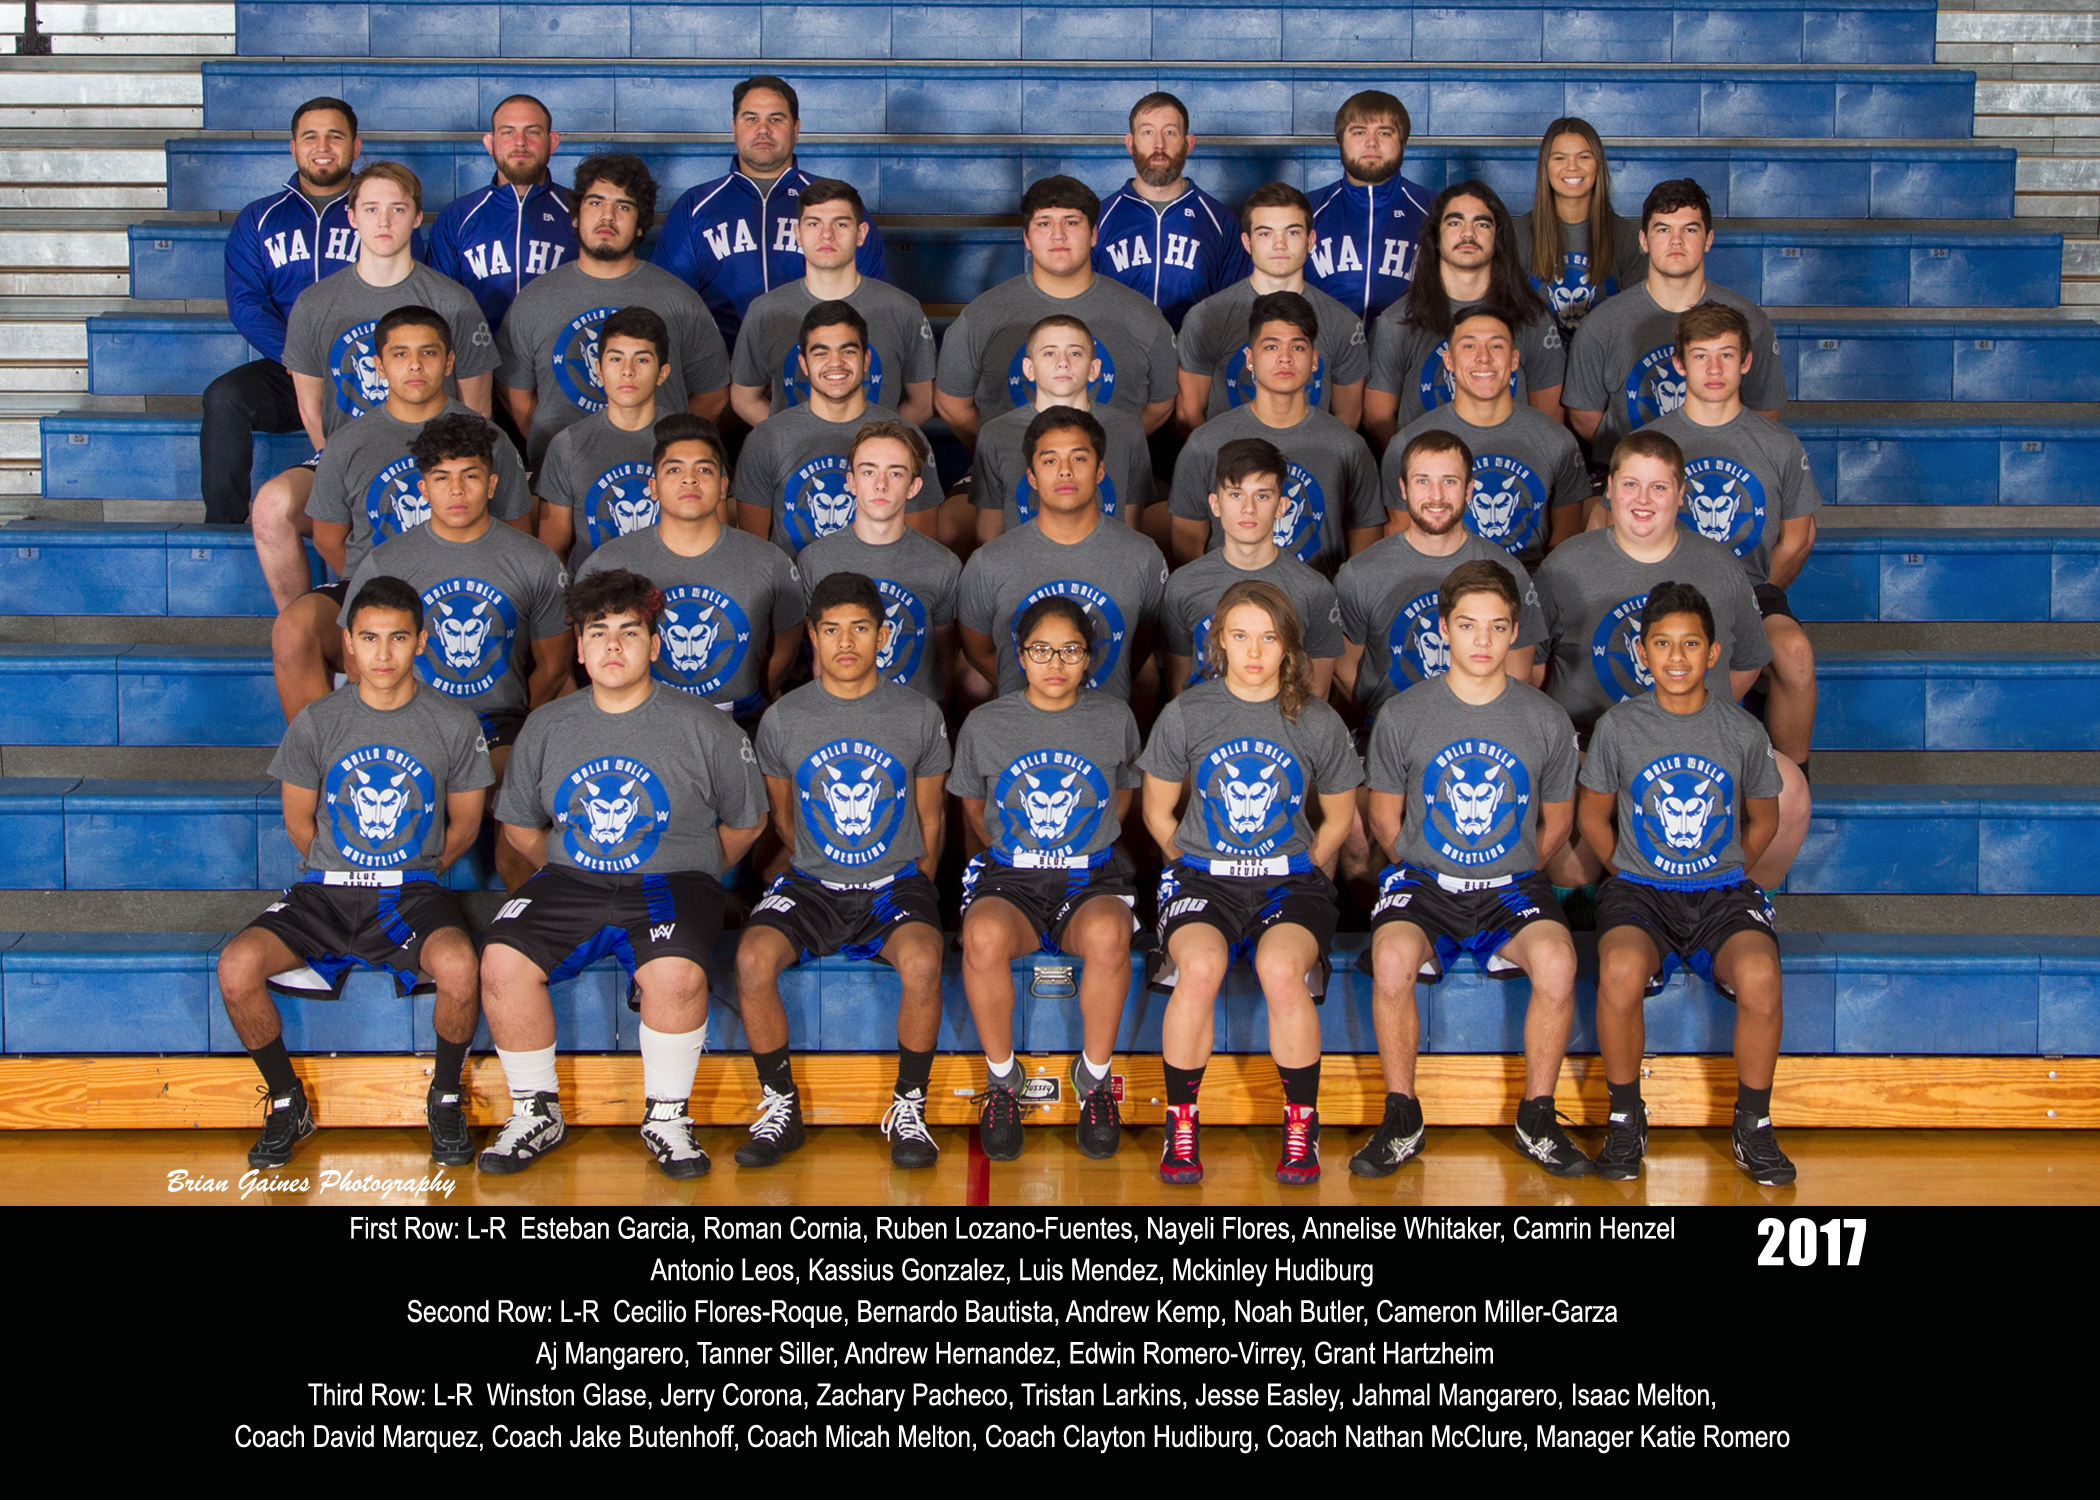 images/athletics/Wrestling/Wrestling_team_2017-2018.jpg